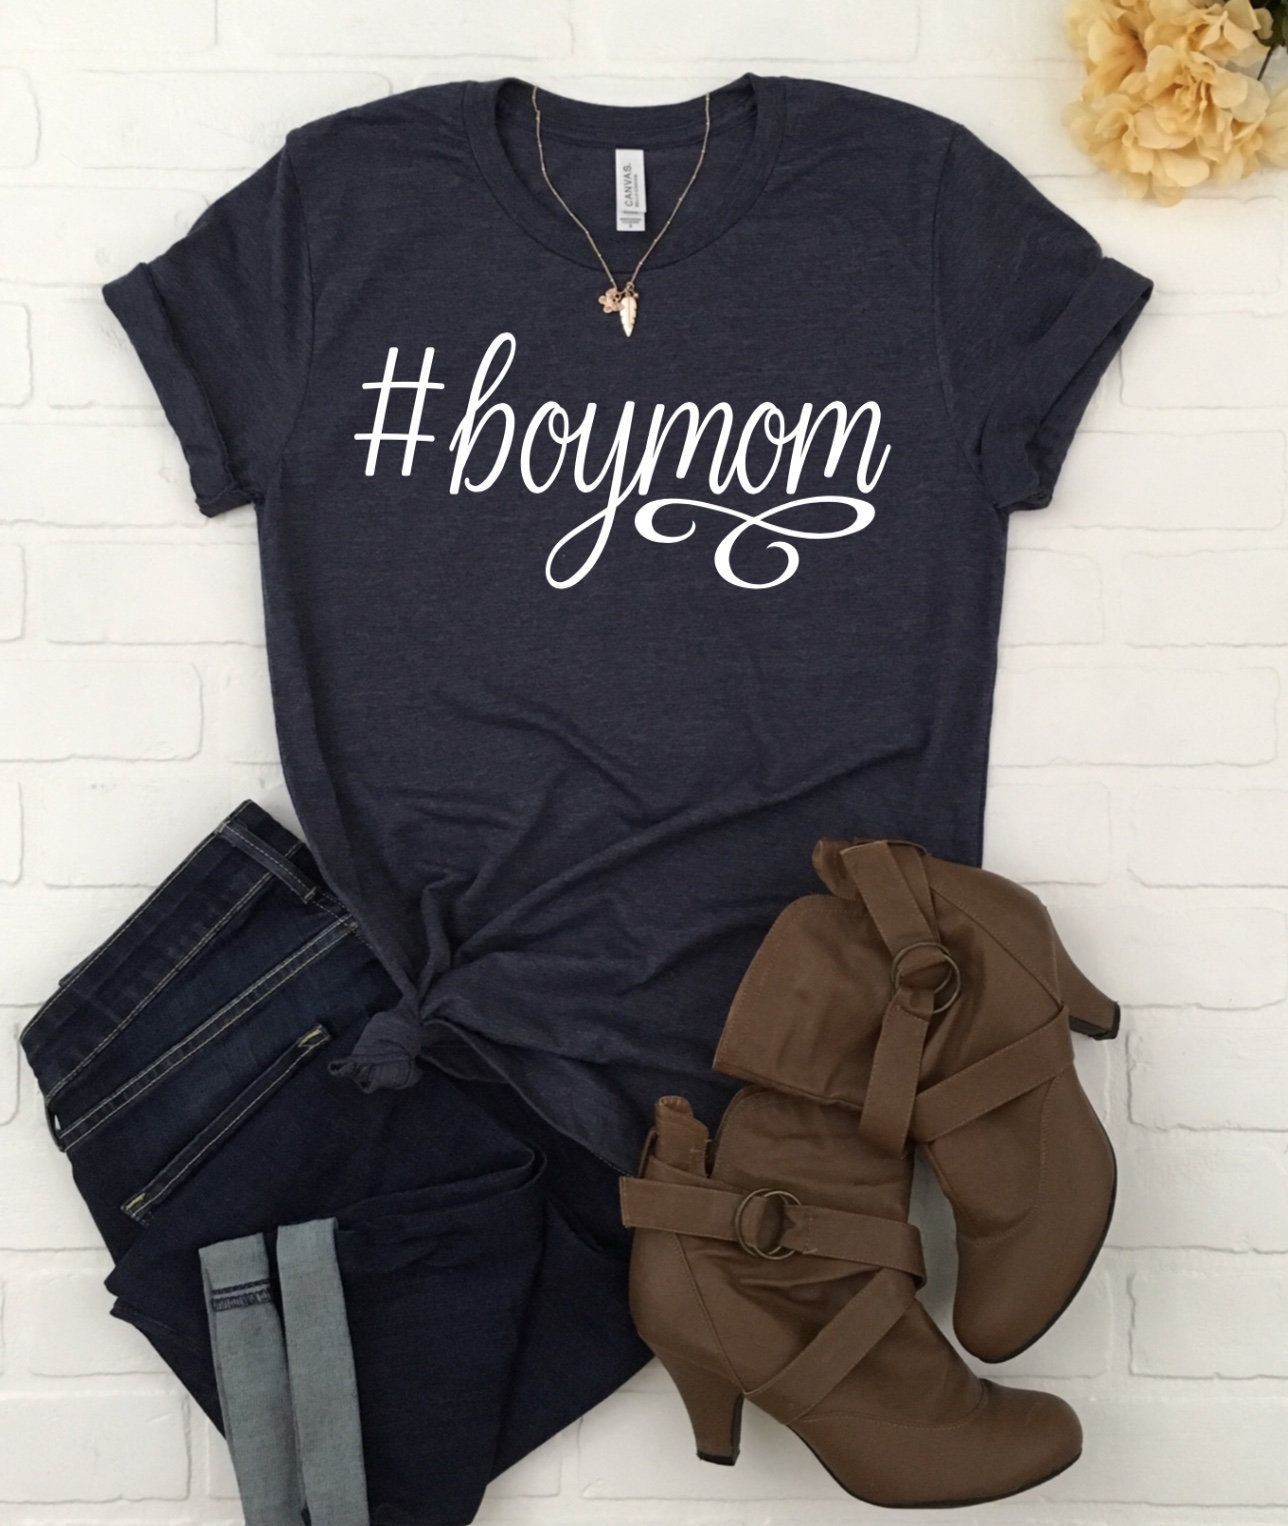 7fa9ce5dc7 Hashtag #boymom jersey t-shirt- Mom of boys- Mother's Day gift- Mom gift by  QualityTimeDesignsCo on Etsy